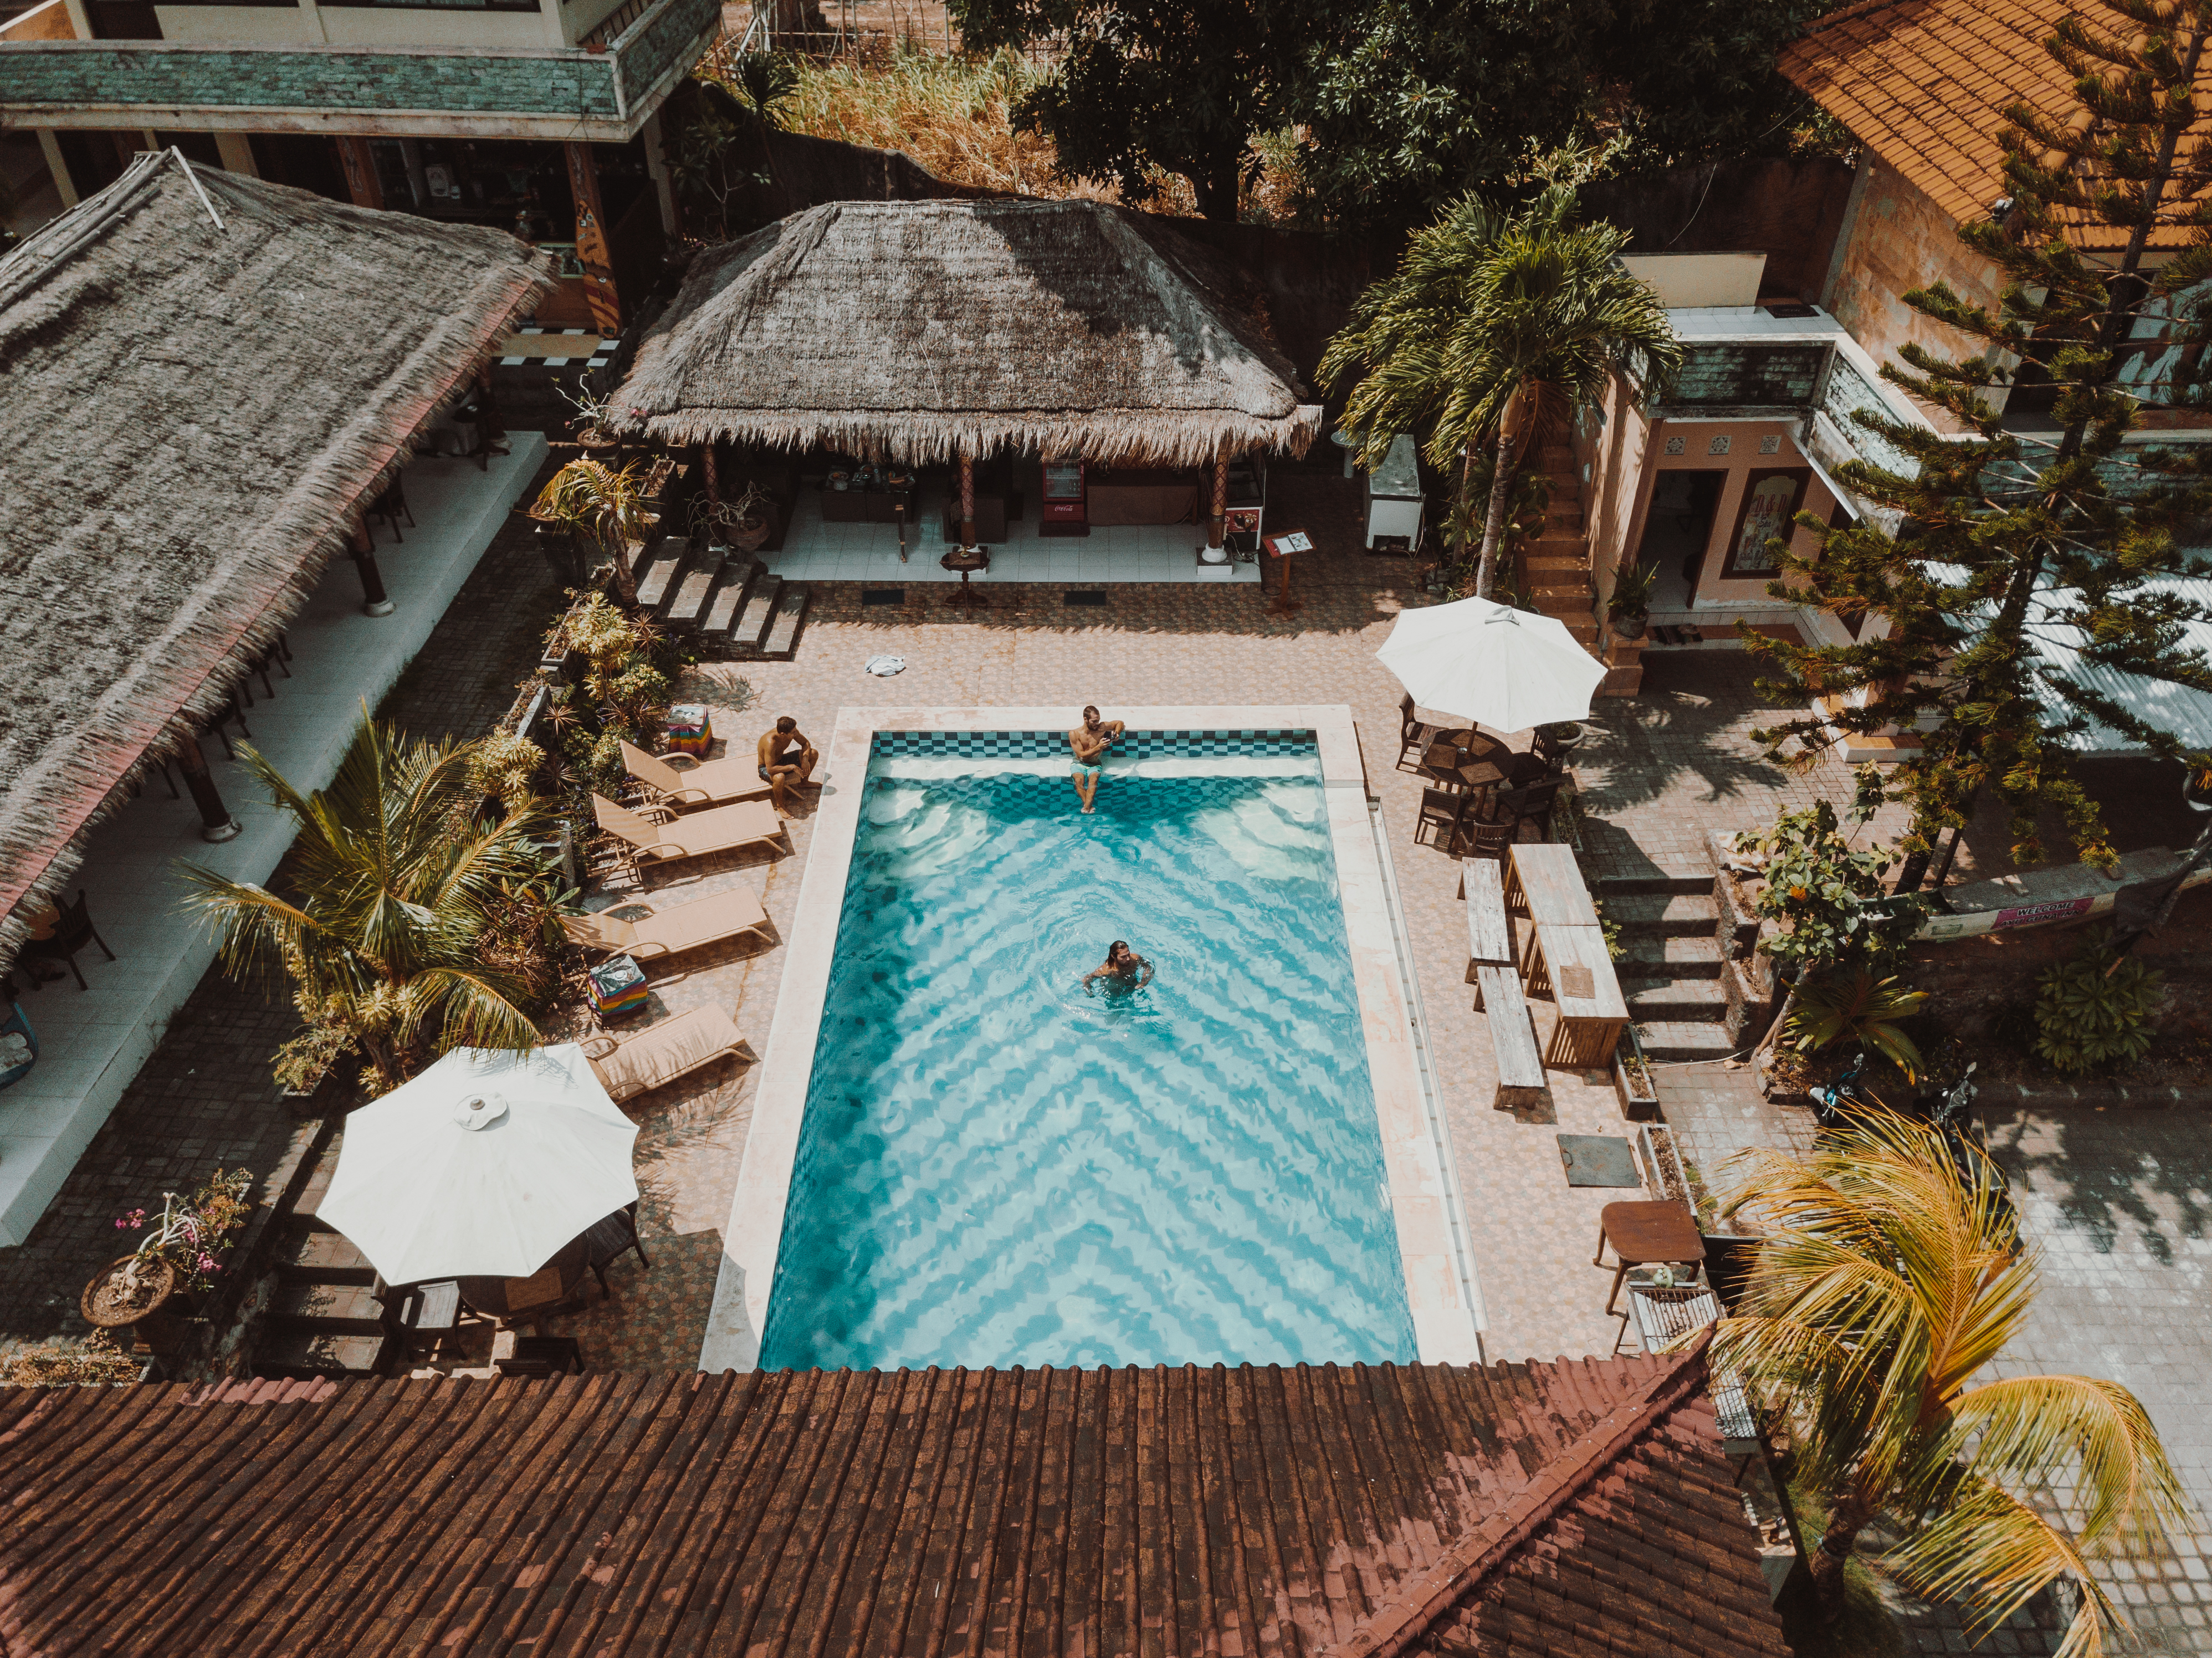 Aerial Photography of Three People in a Swimming Pool